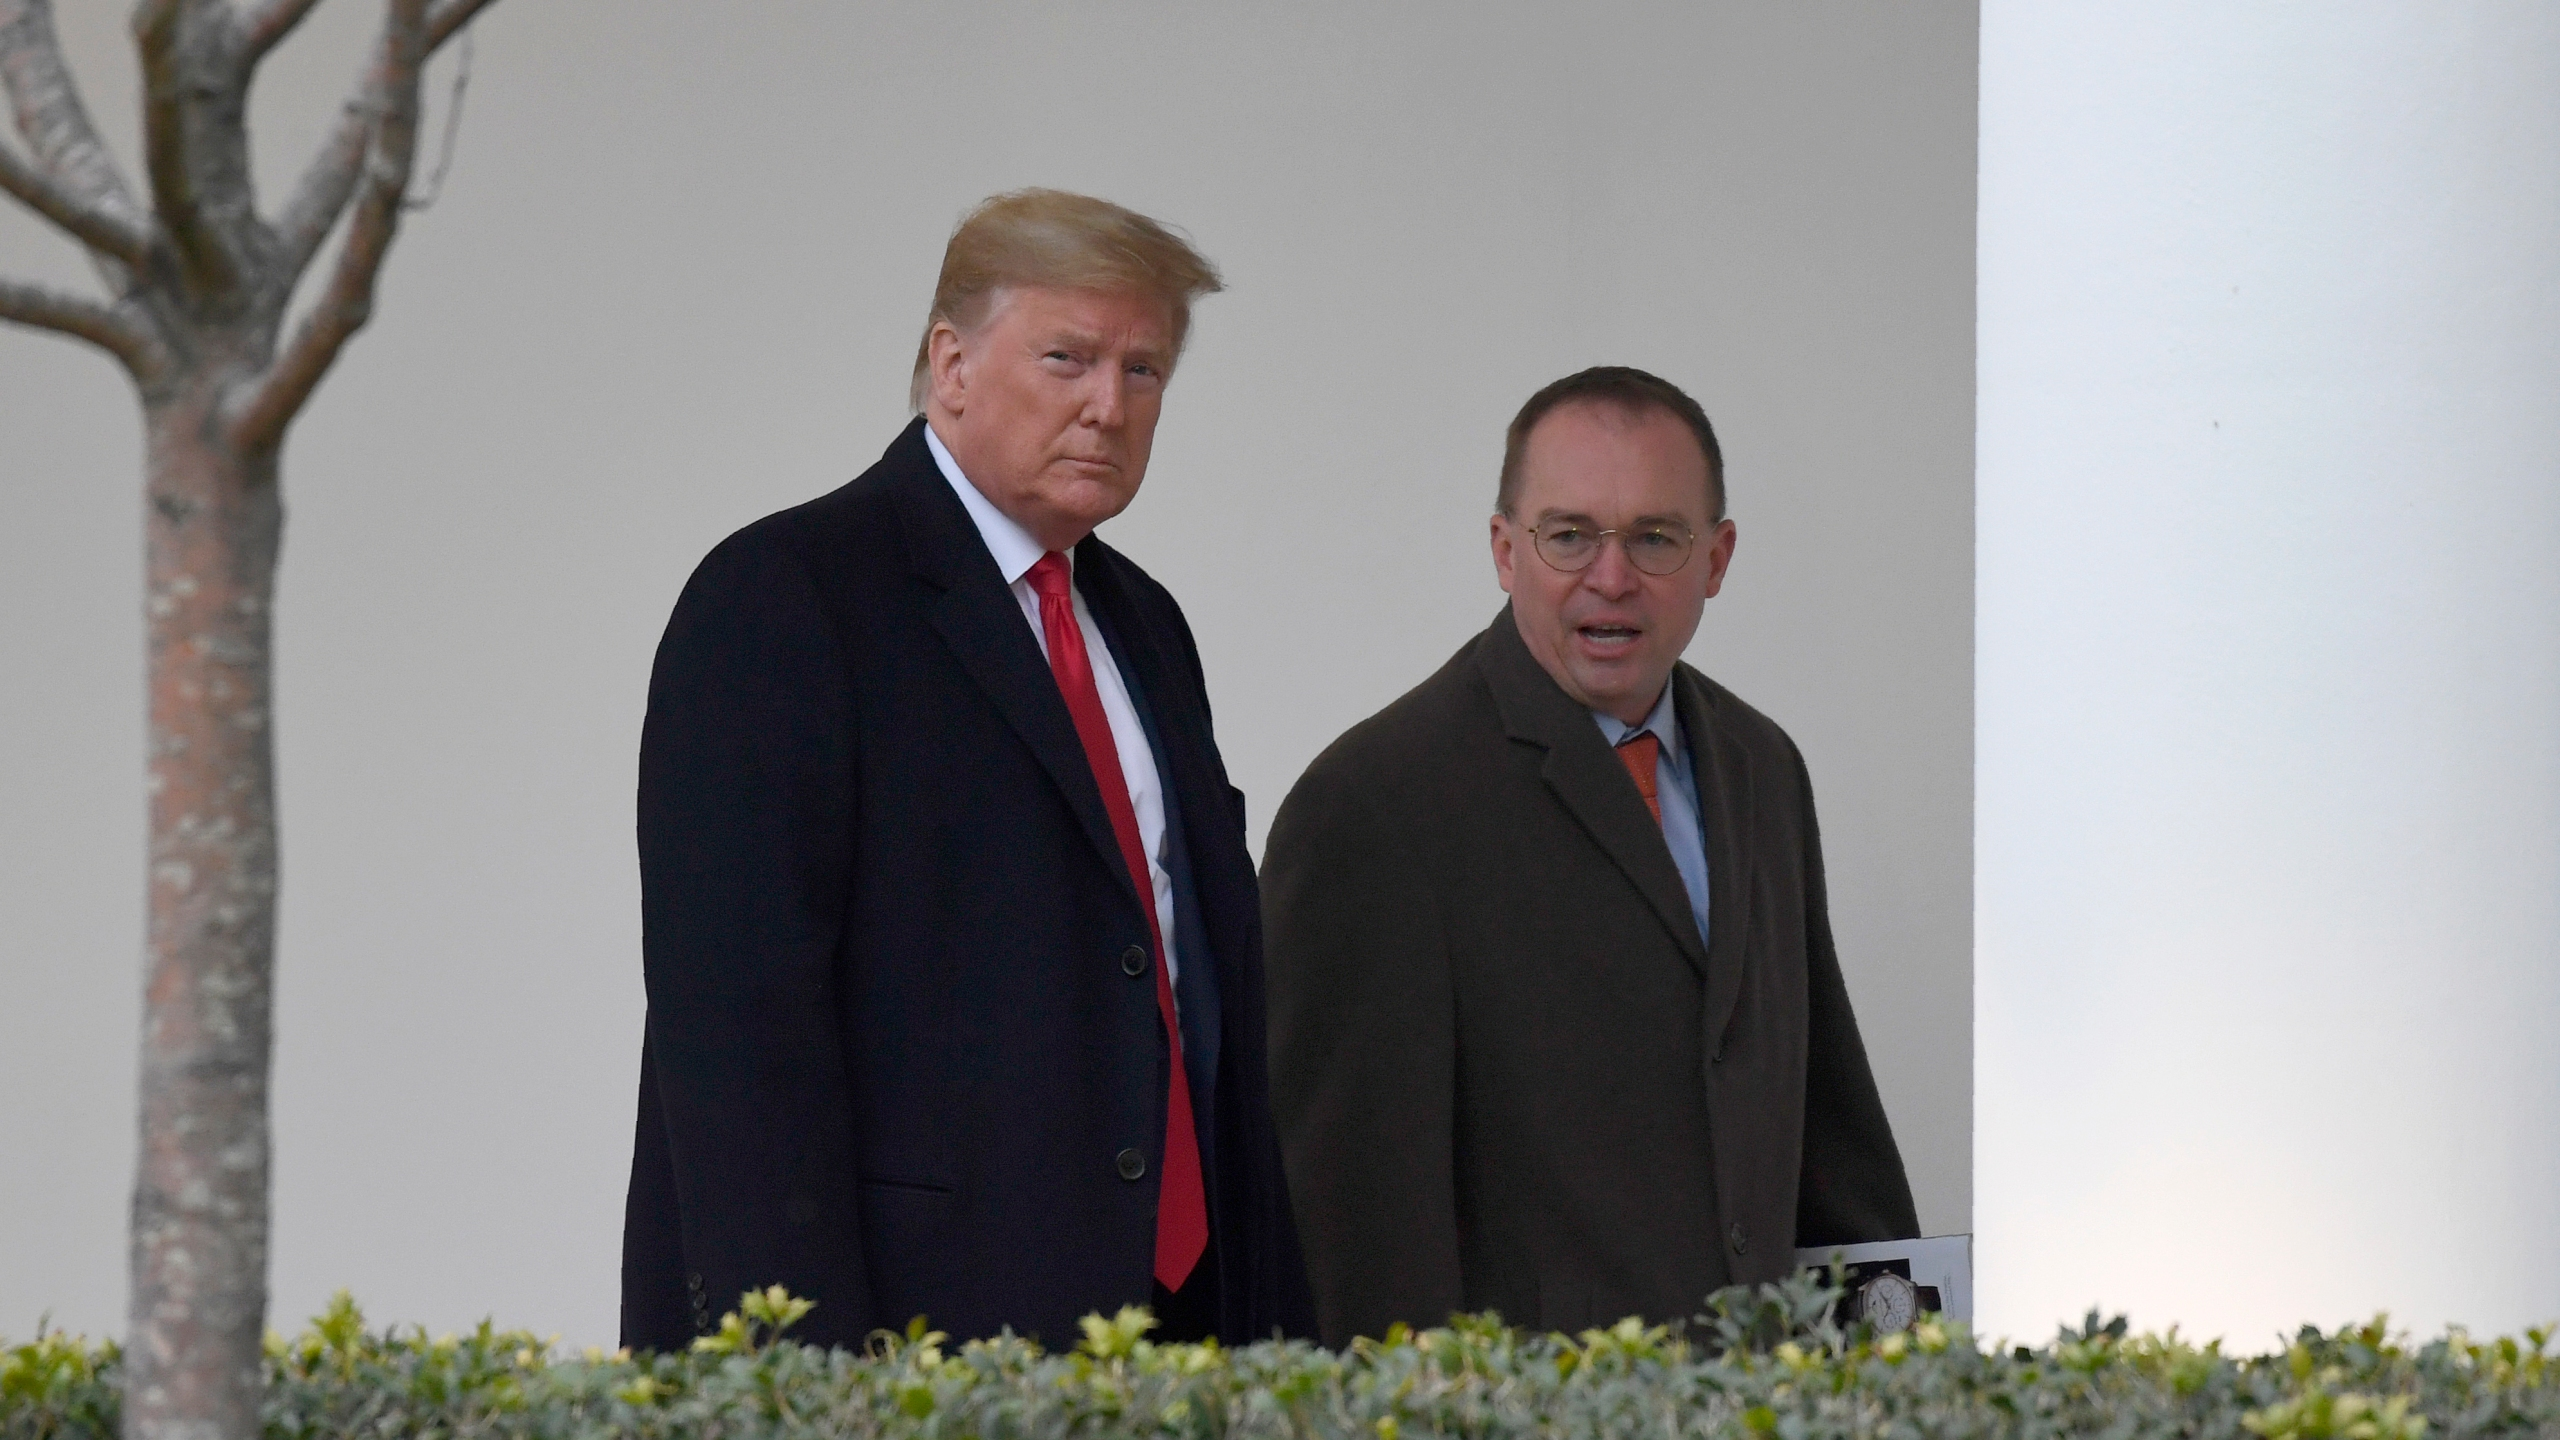 Donald Trump, Mick Mulvaney